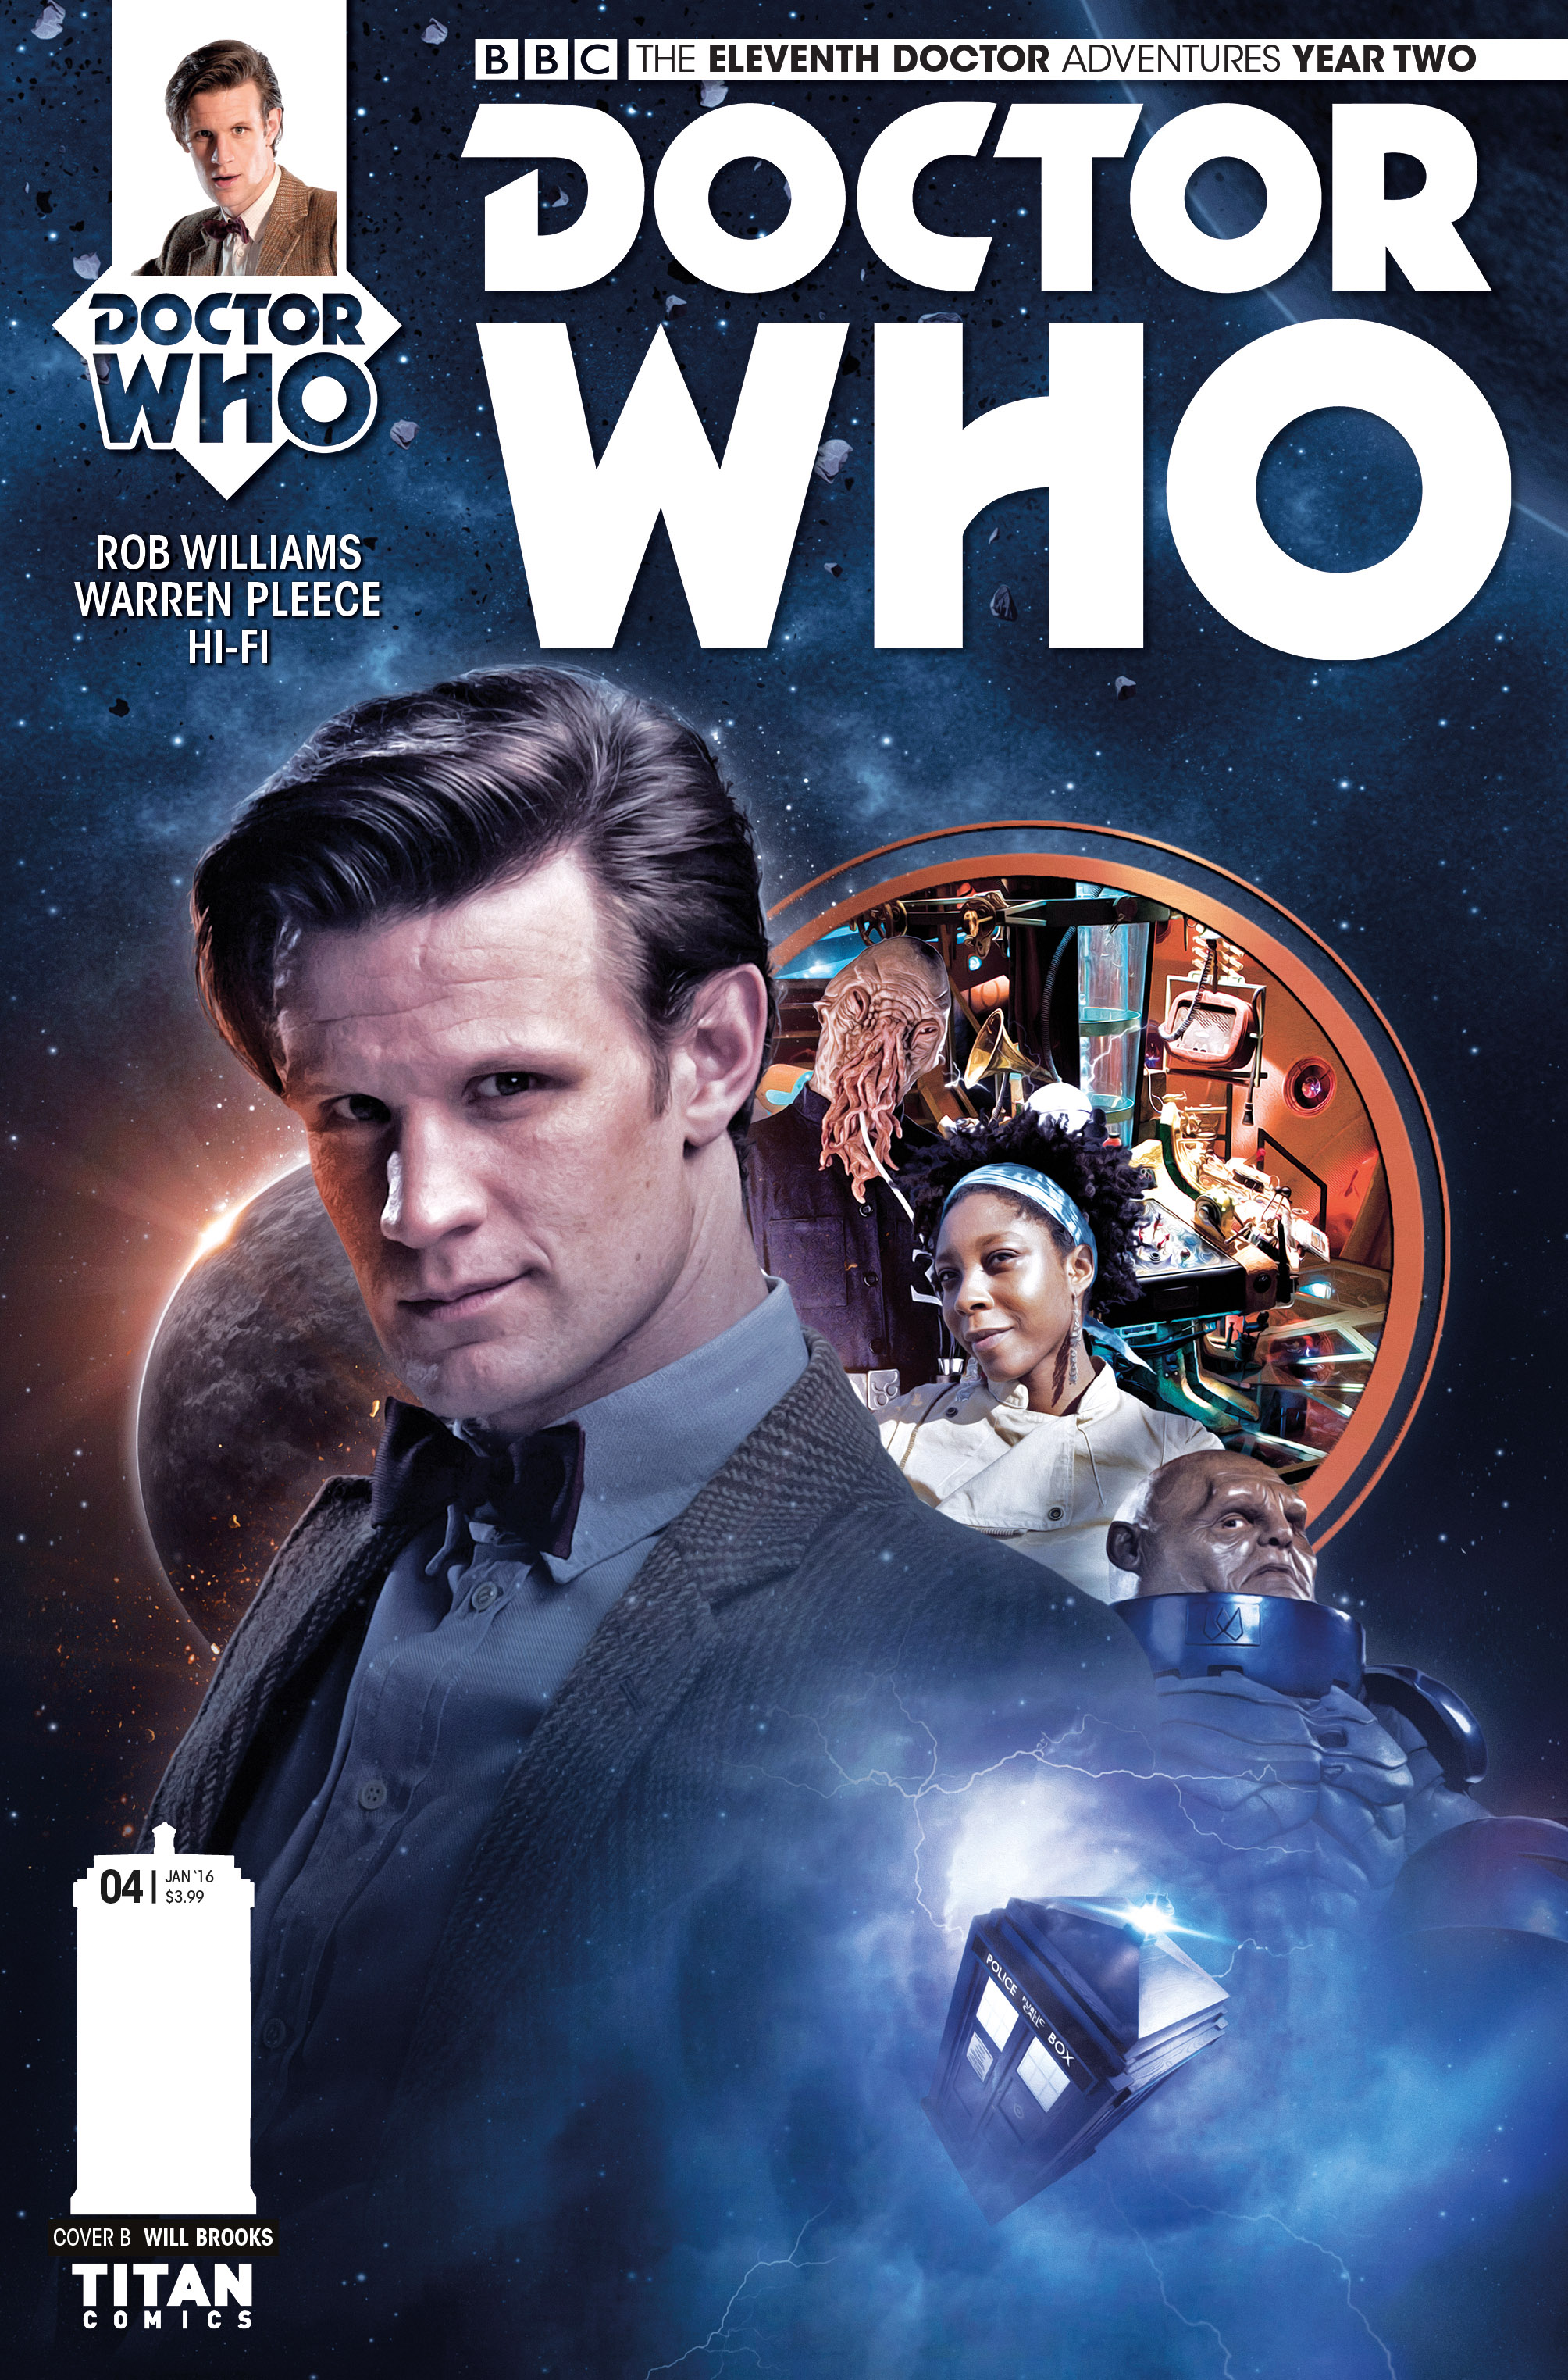 DOCTOR WHO: THE ELEVENTH DOCTOR #2.4 Cover